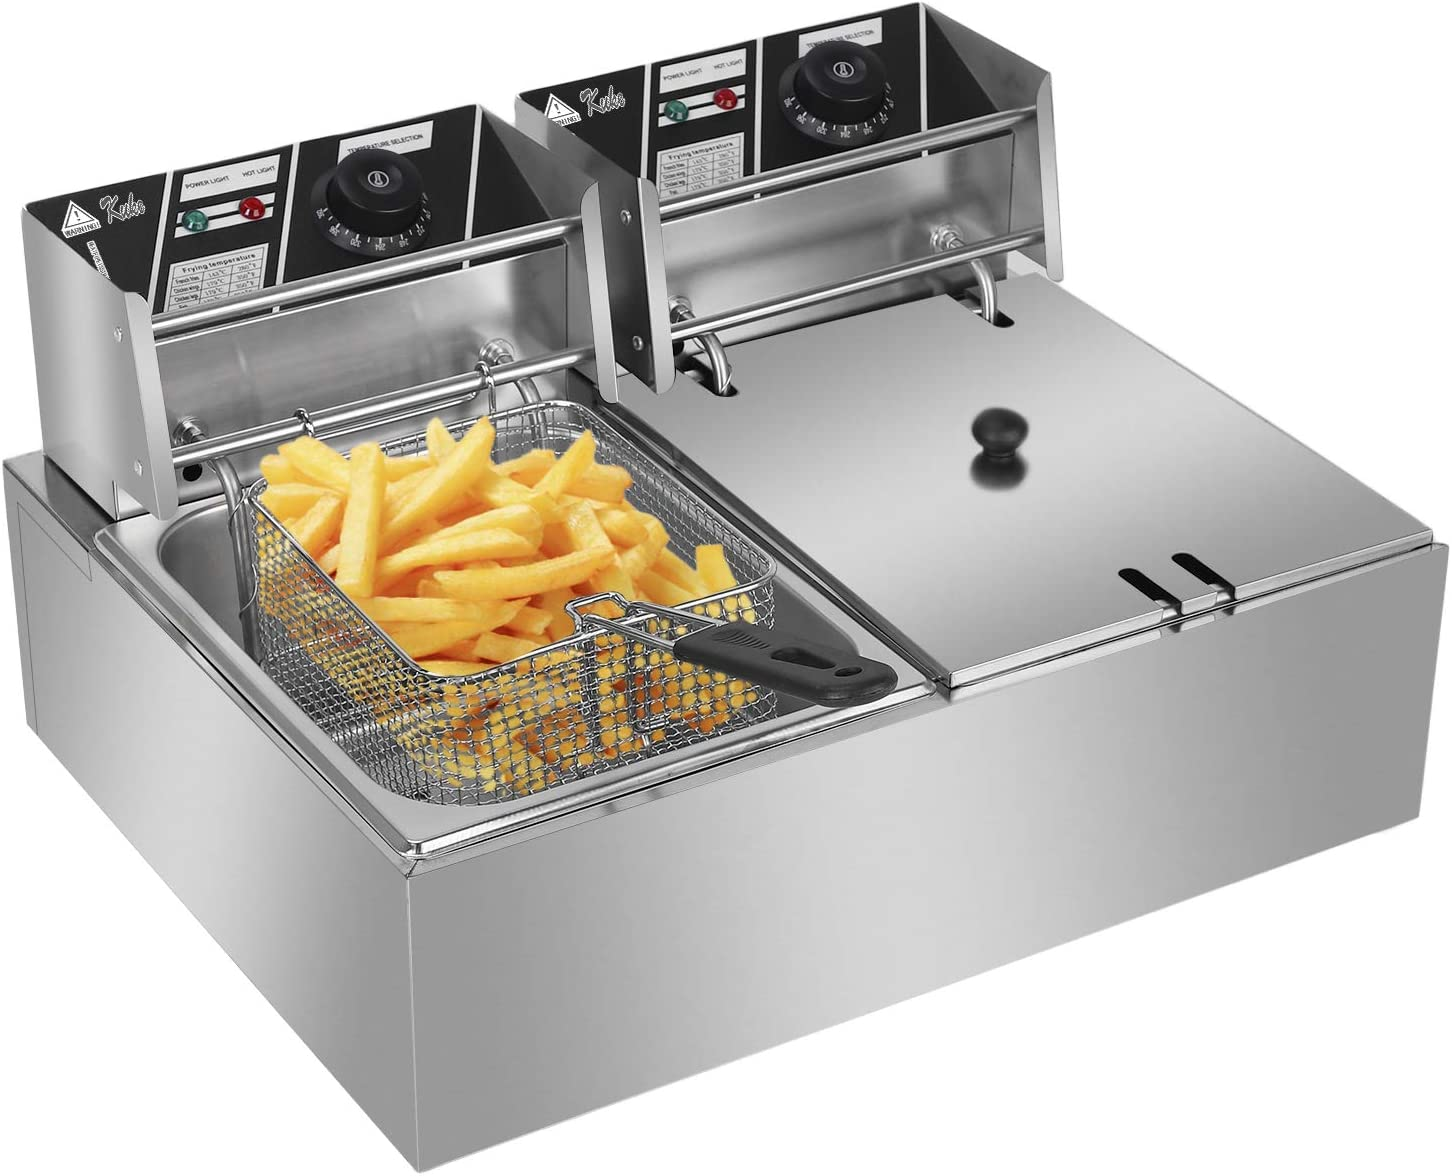 QISE Heavy Duty Deep Fryer, Stainless Steel Large Double Cylinder Electric Fryers with Removable Basket and Professional Heating Element 110V/5000W Max US Plug (12.7QT/12.7L)